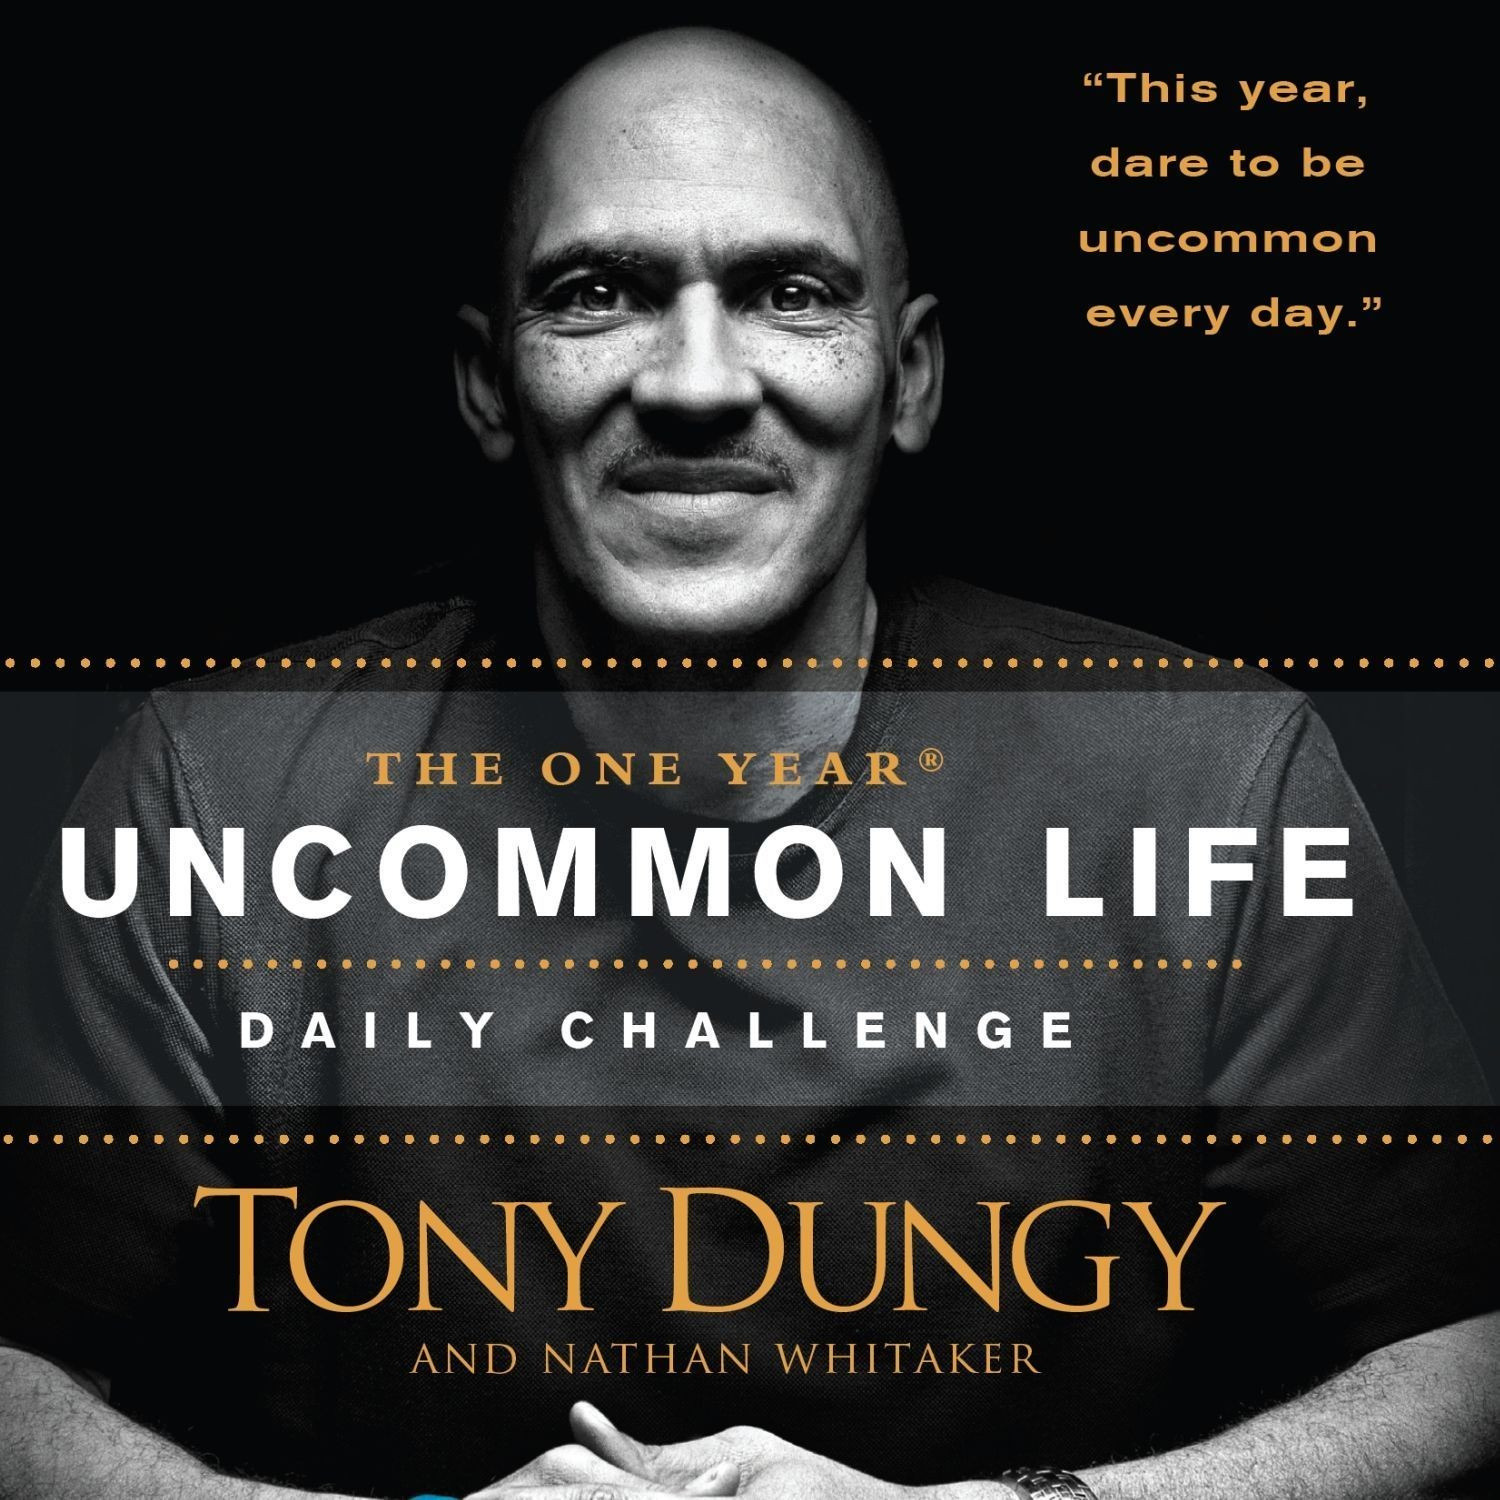 Printable The One Year Uncommon Life Daily Challenge Audiobook Cover Art